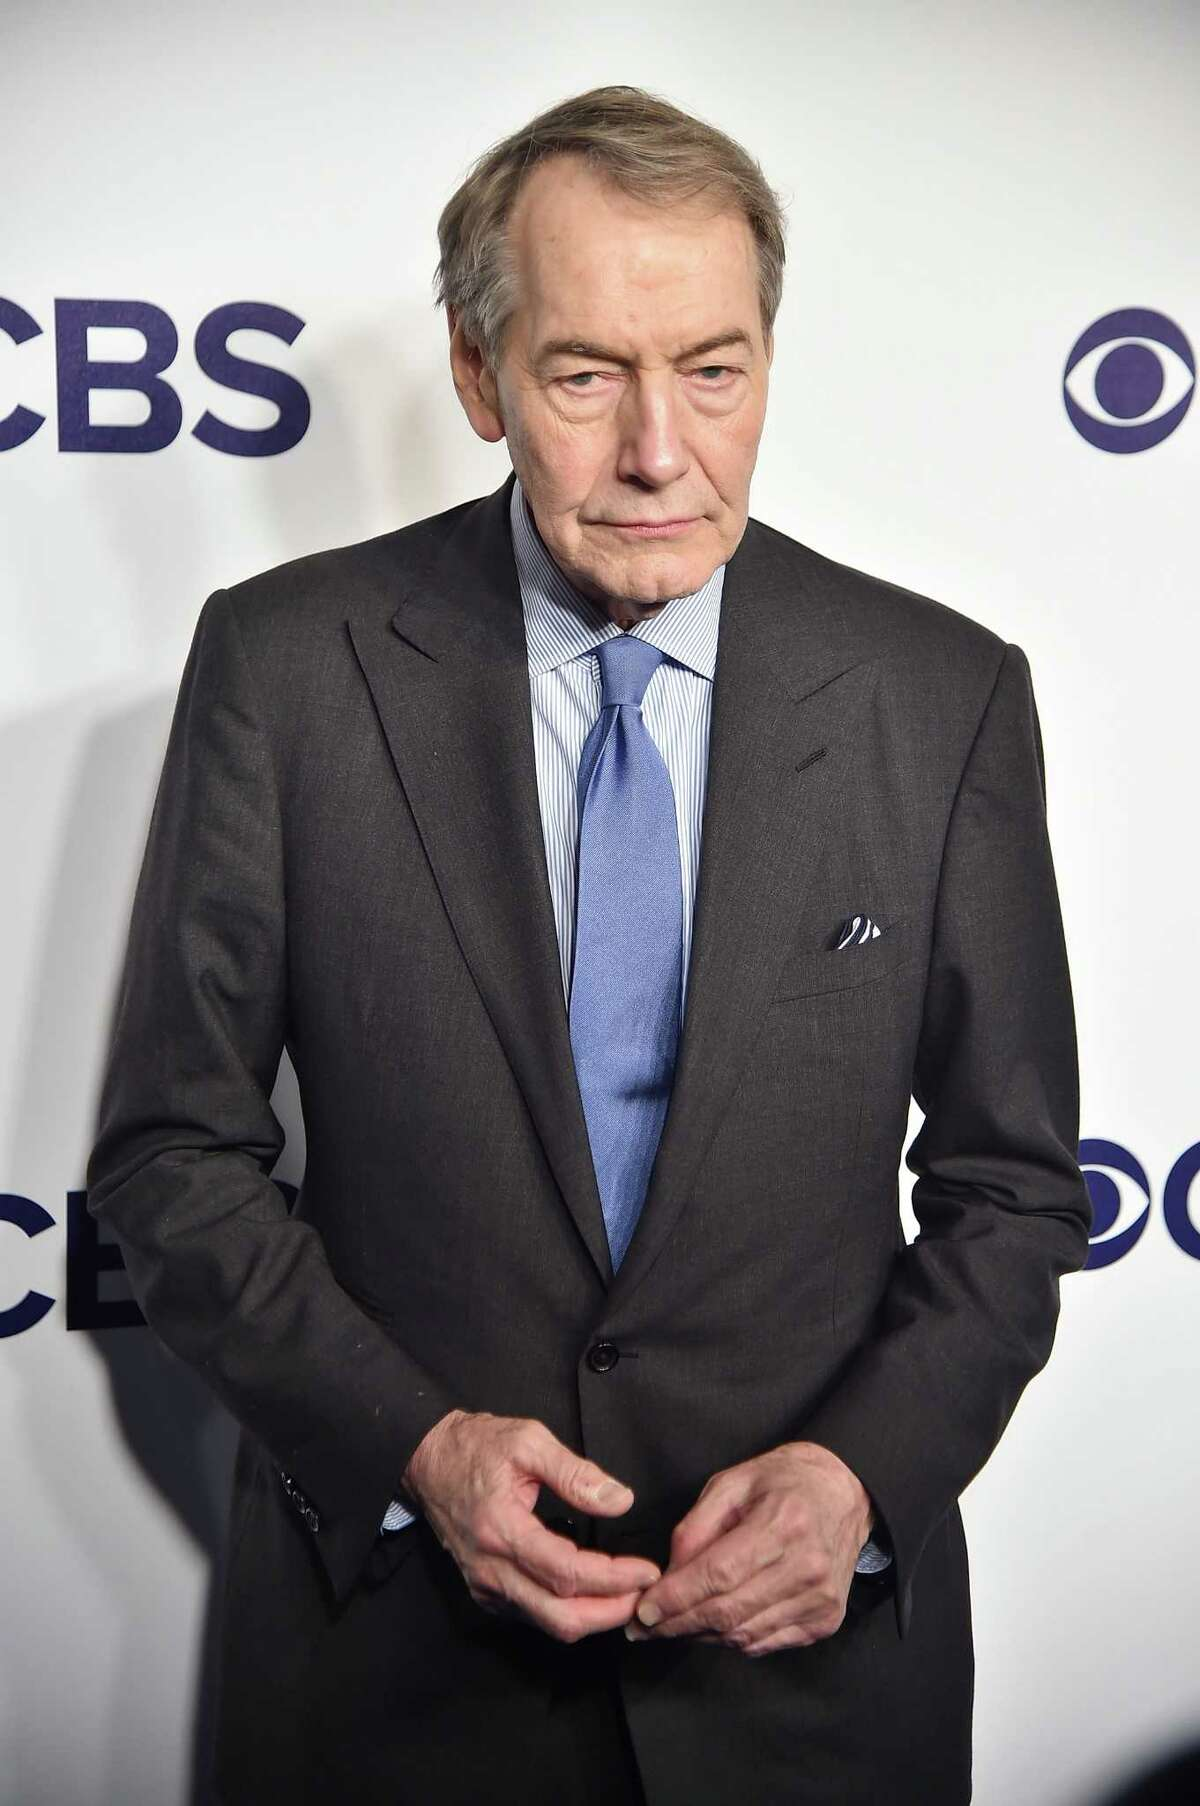 Charlie Rose has been fired by CBS in the wake of sexual harassment allegations by 8 women. NEW YORK, NY - MAY 17: Charlie Rose attends the 2017 CBS Upfront on May 17, 2017 in New York City. (Photo by Theo Wargo/Getty Images) ORG XMIT: 700033295